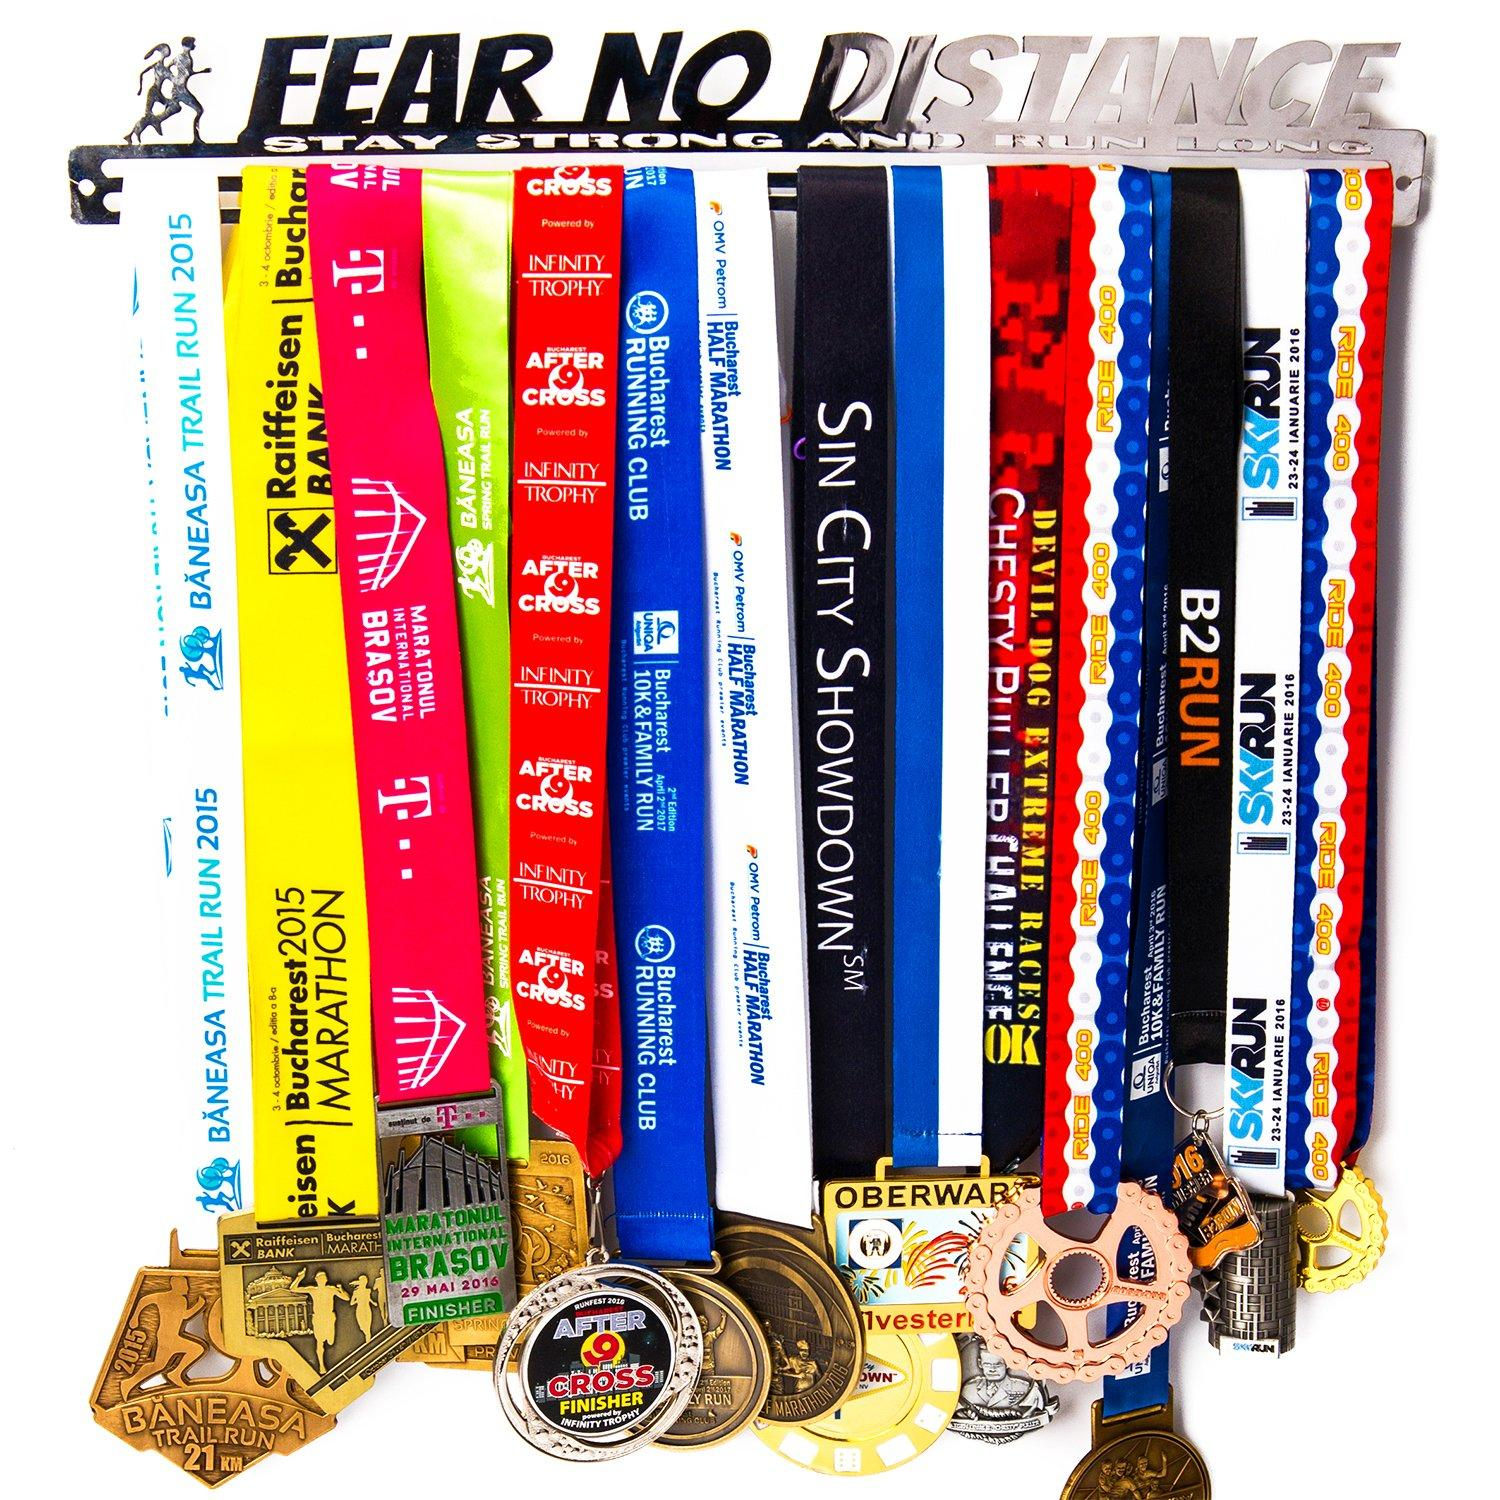 Medal Hanger Rack Display Wall Mount 30 Running Marathon Medals Fear No Distance Accessories Run Running Hanging Sports Achievement Silver Stainless Steel Screws Included